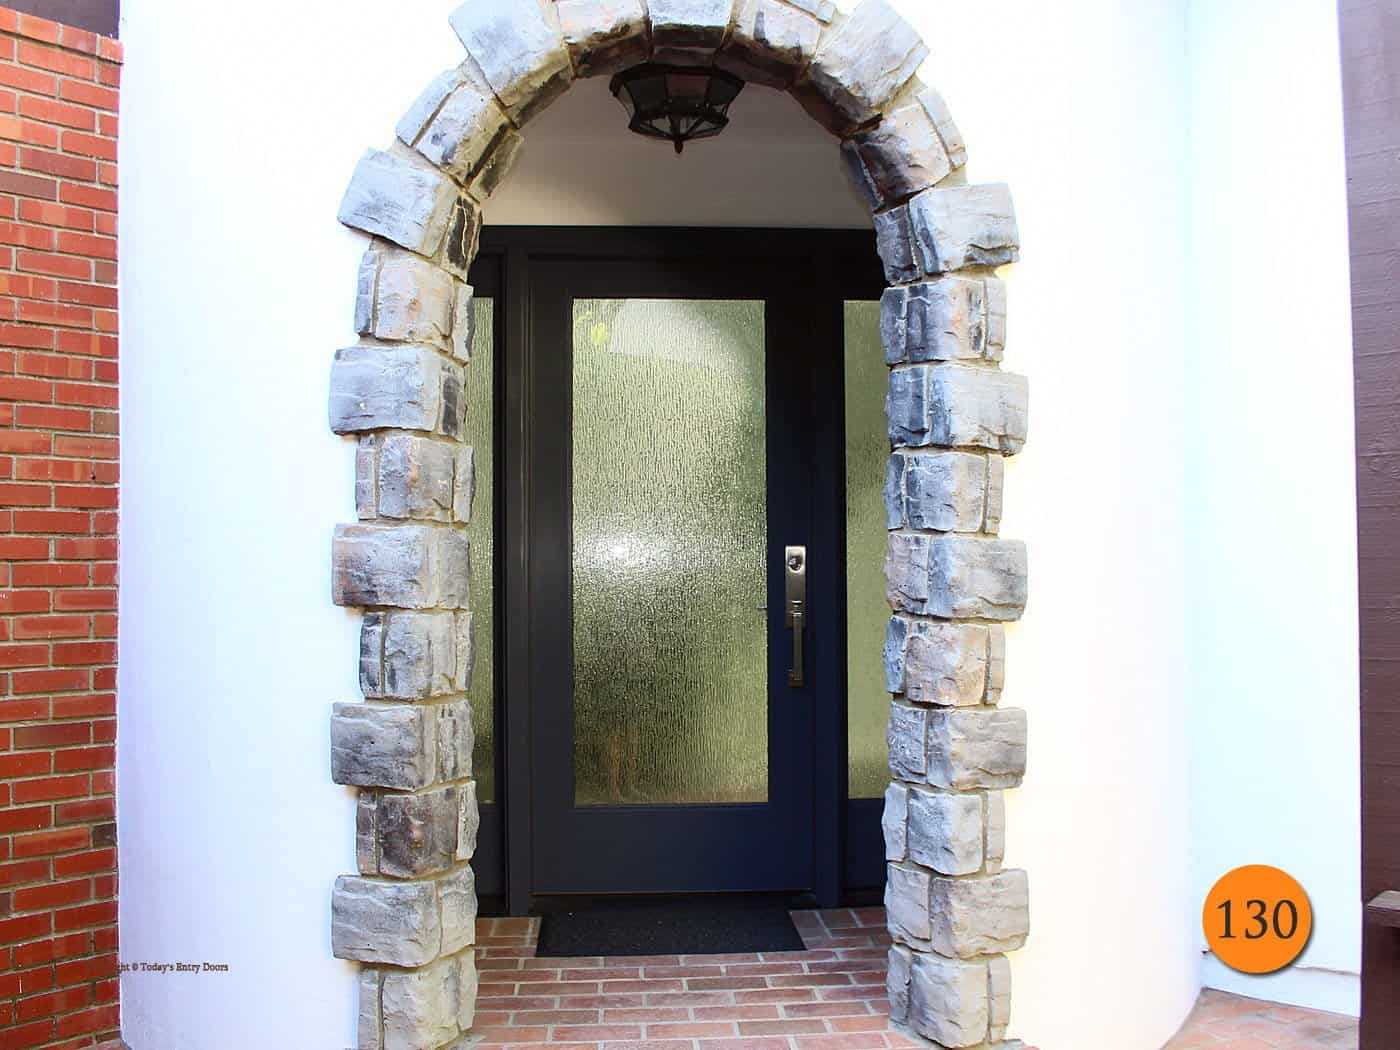 This is an image of a custom front door, with beautiful high-privacy glass, installed in the Orange County, California area by Today's Entry Doors.